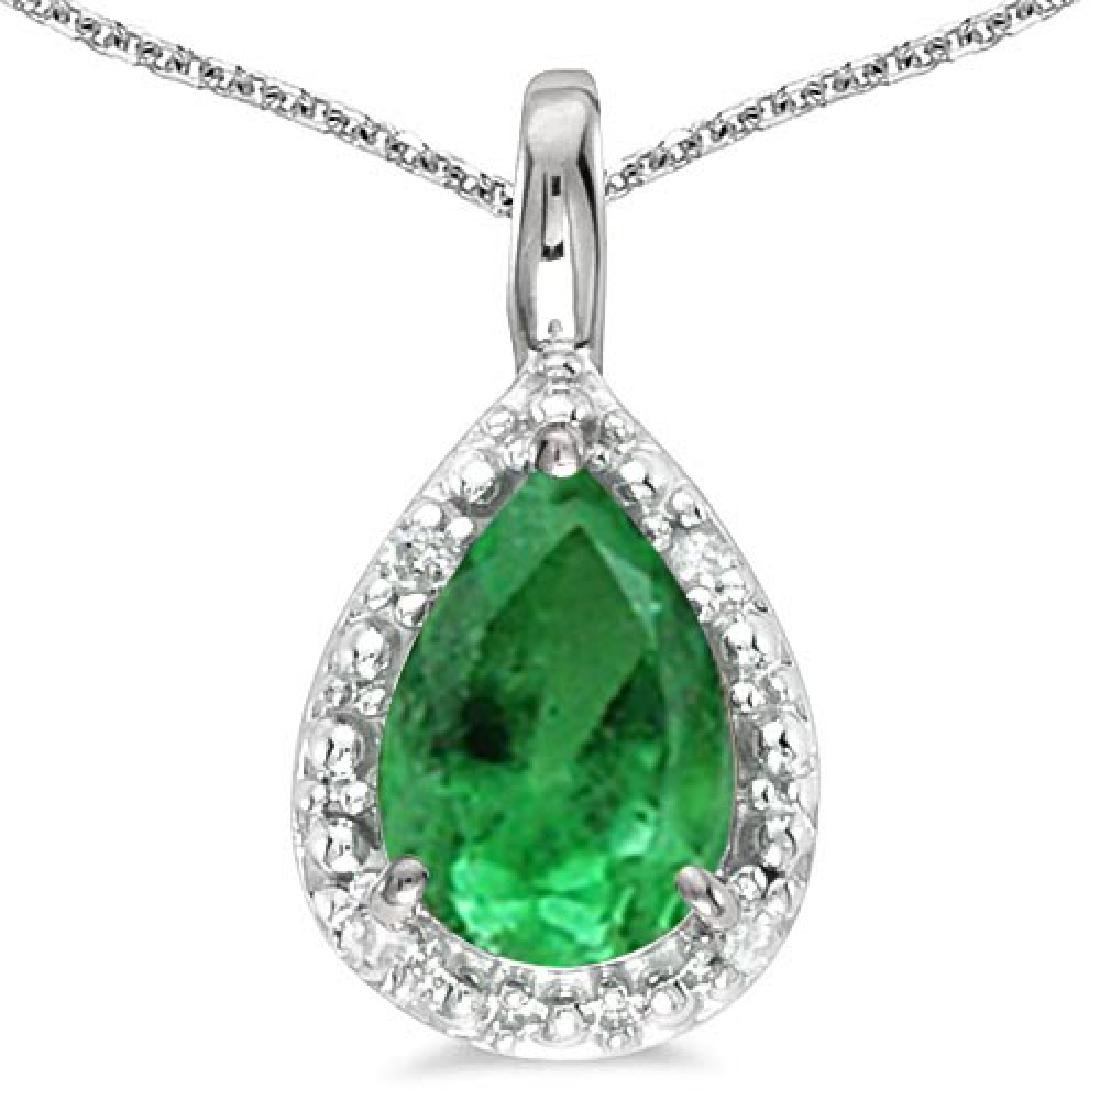 0.4 CARAT EMERALD & CZ 14KT SOLID WHITE GOLD PENDANT